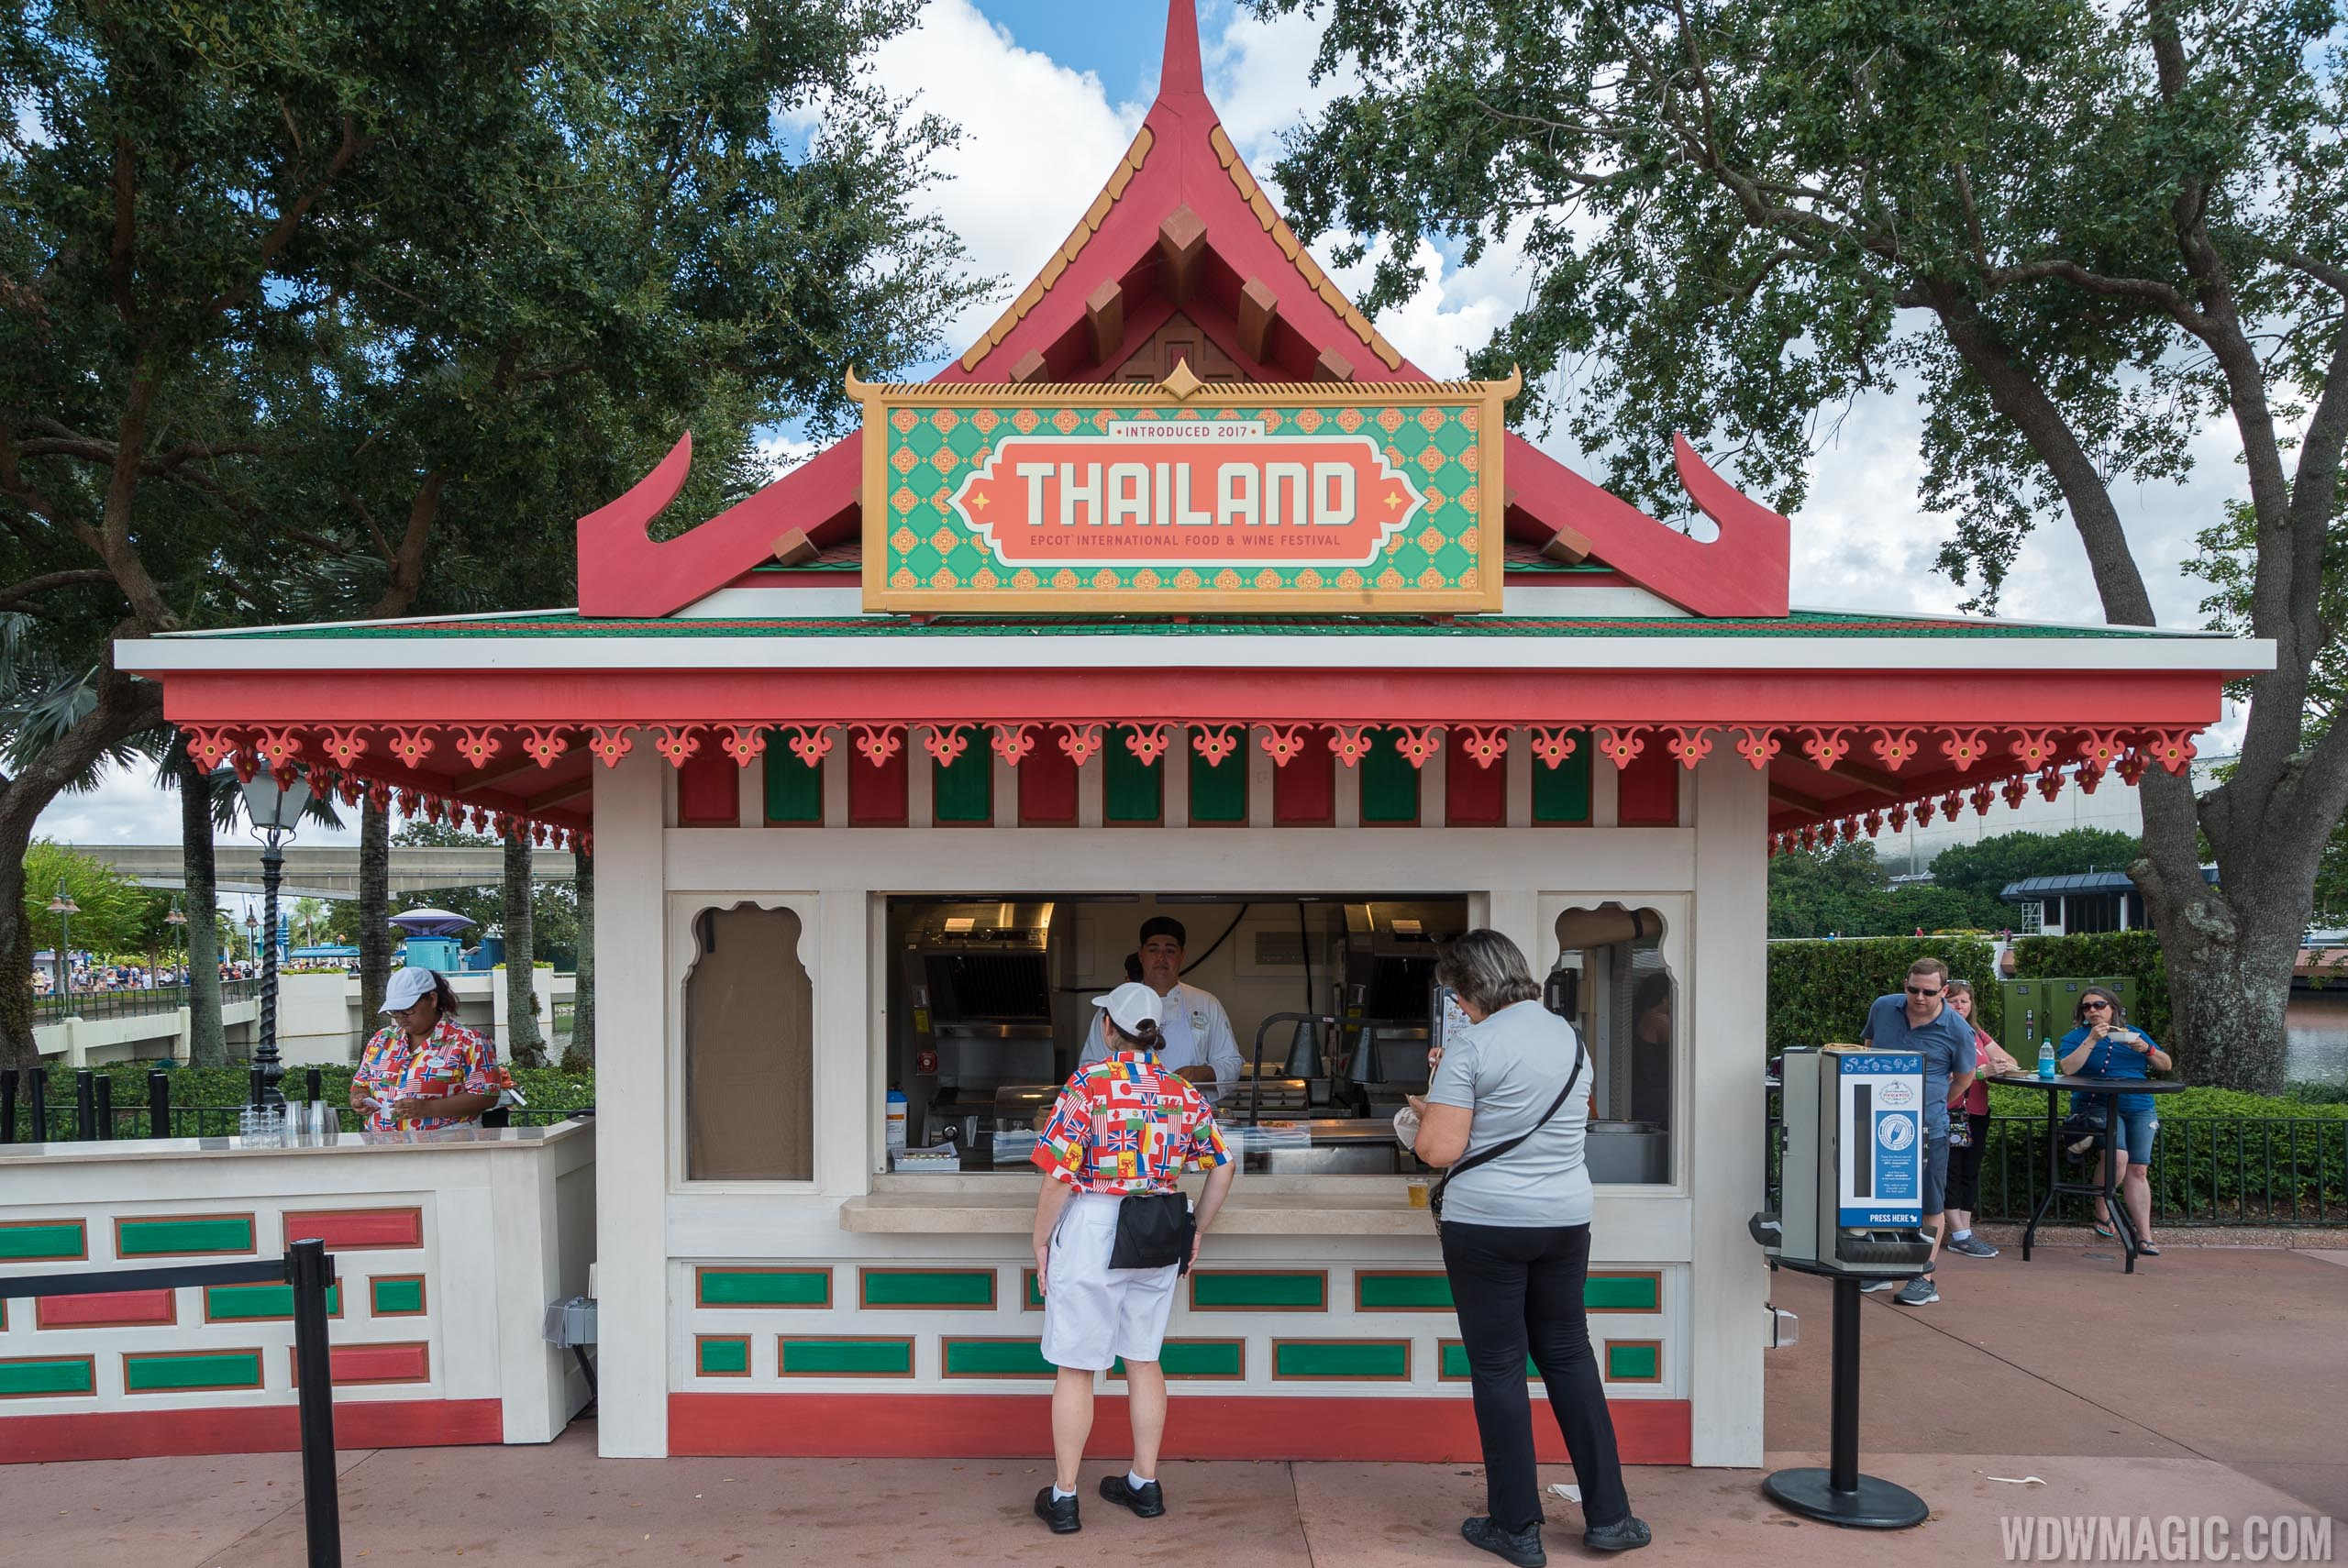 2019 Epcot Food And Wine Festival Marketplace Kiosks Menus